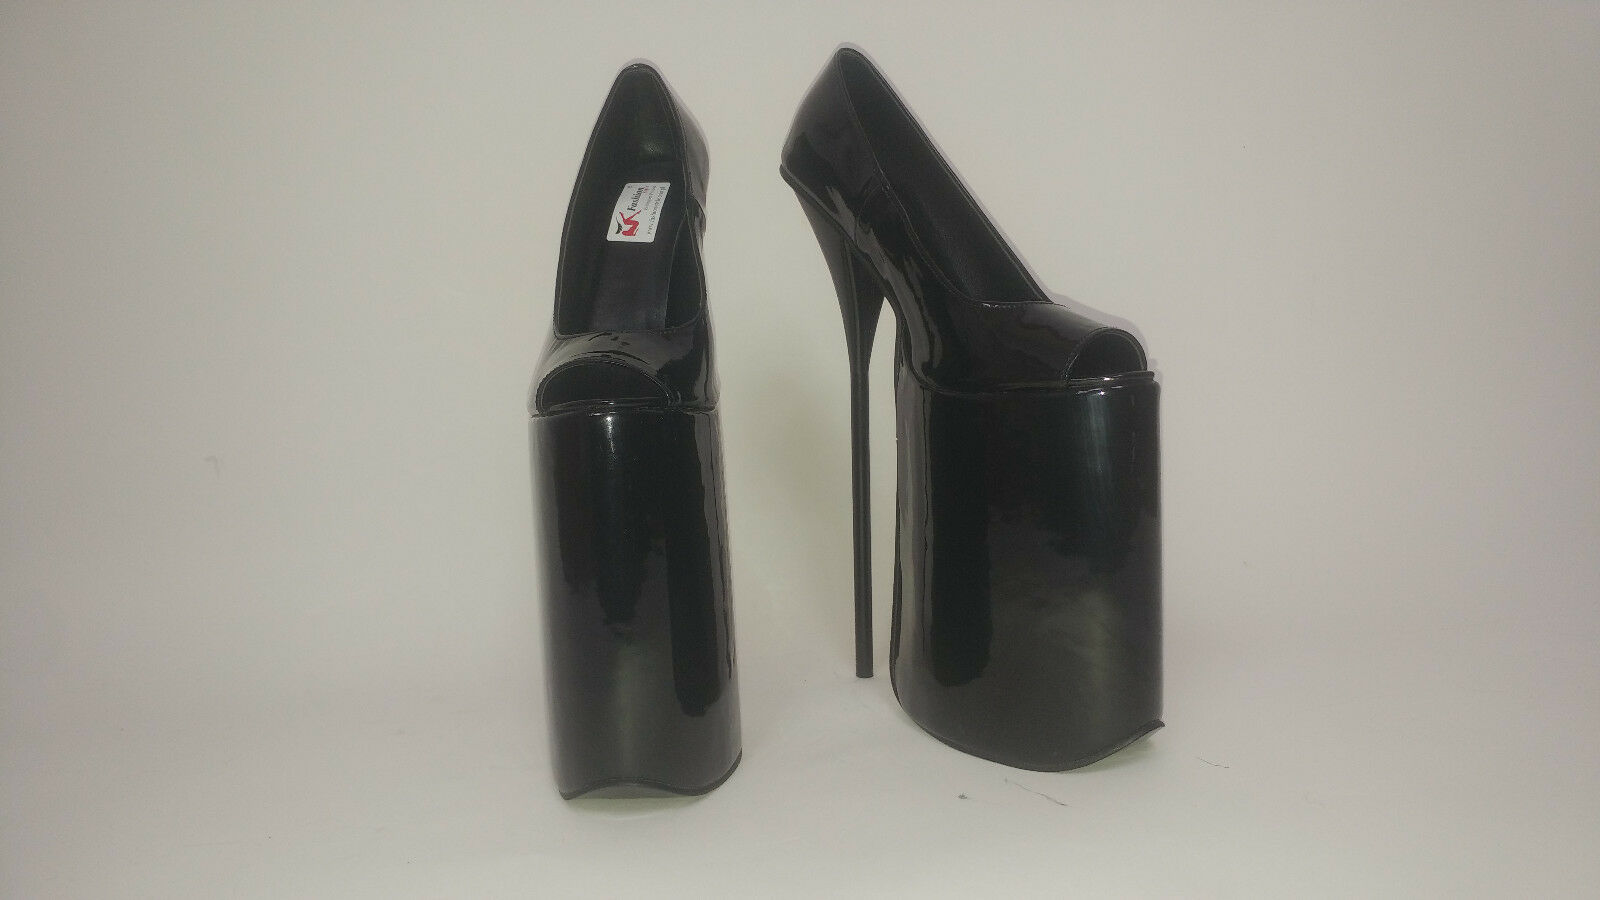 30cm high pumps heels pumps high patform 20cm produce FASHION STYLE Bolingier Poland d98901